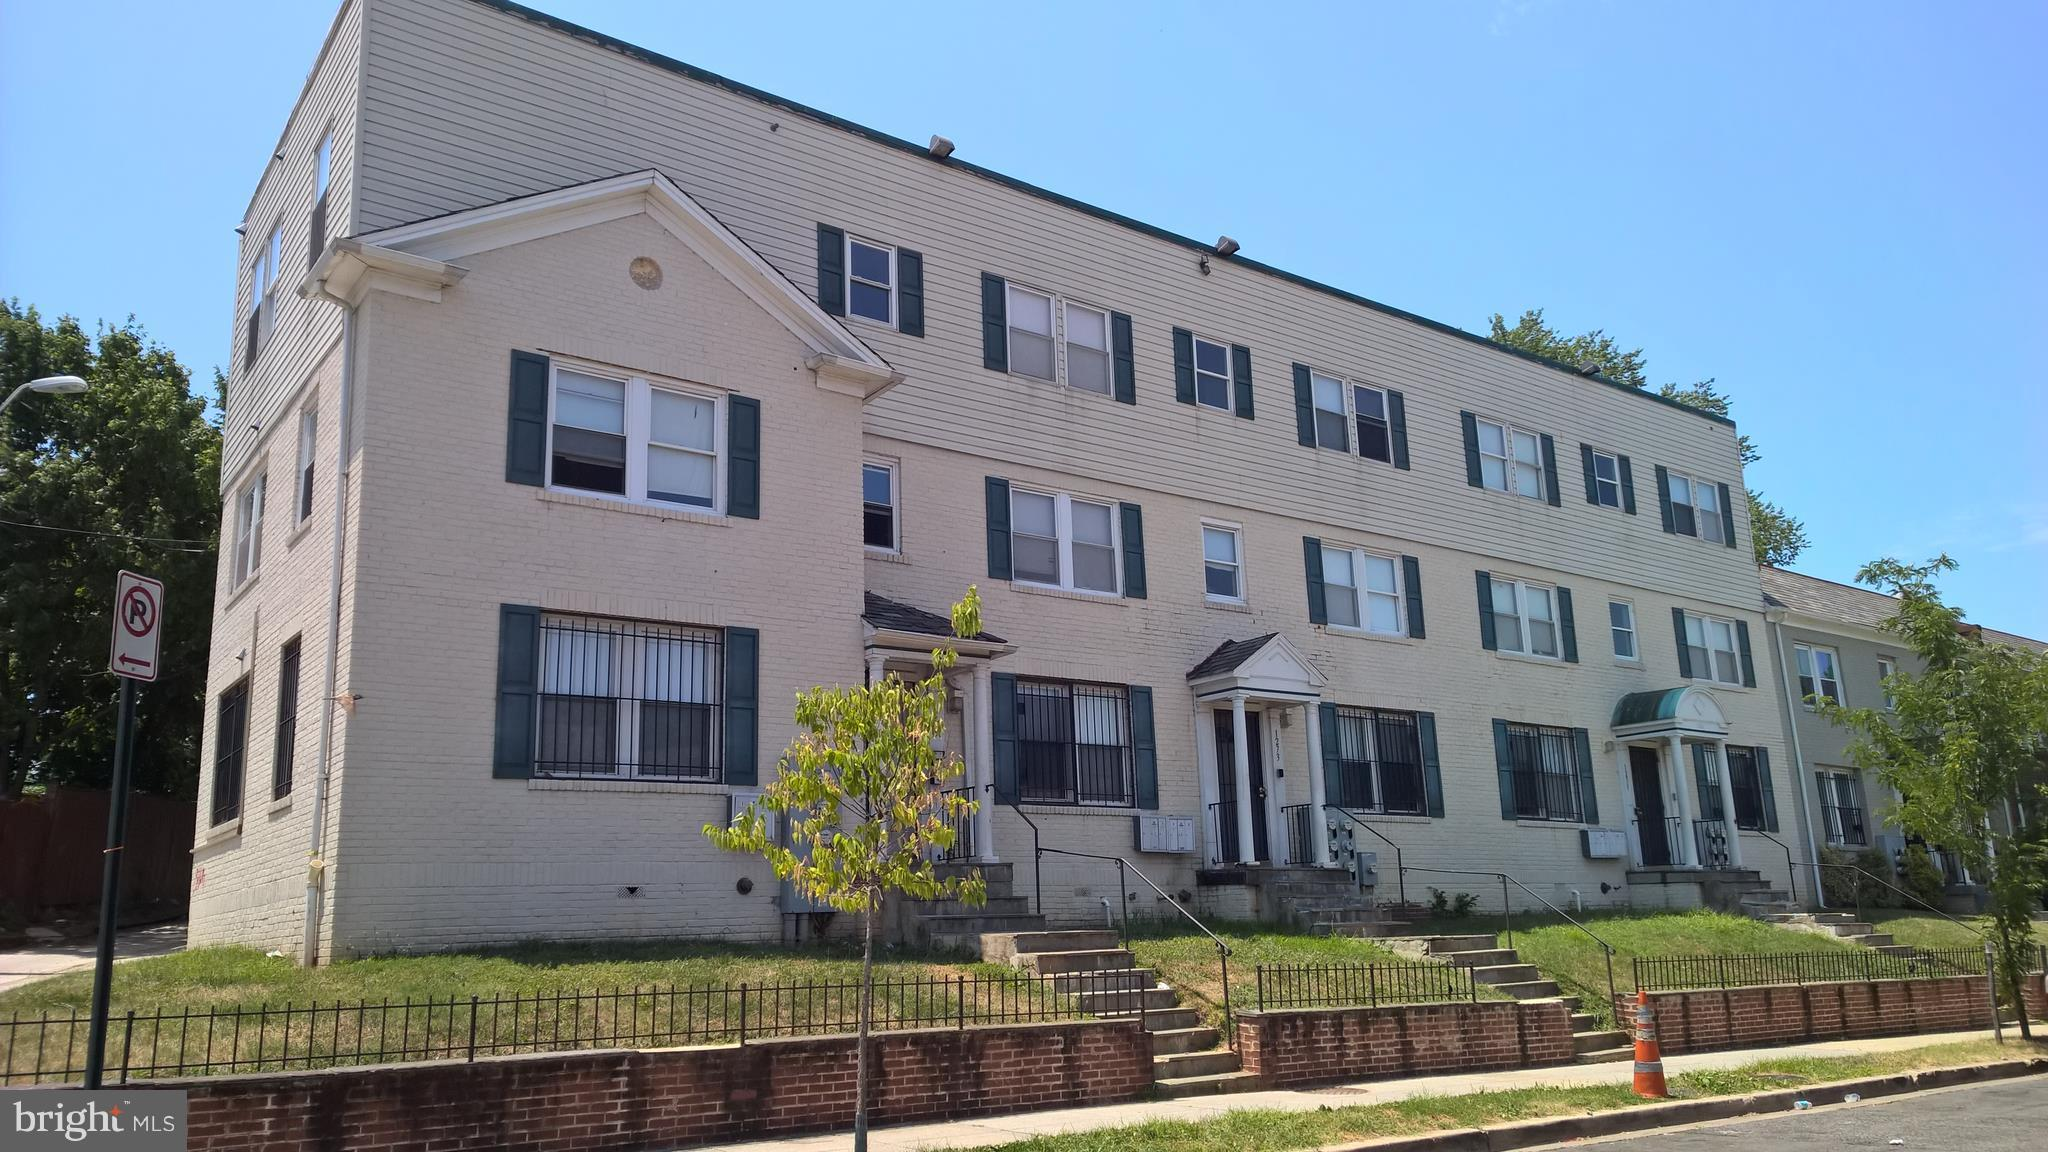 1271 MEIGS PLACE NE, WASHINGTON, DC 20002